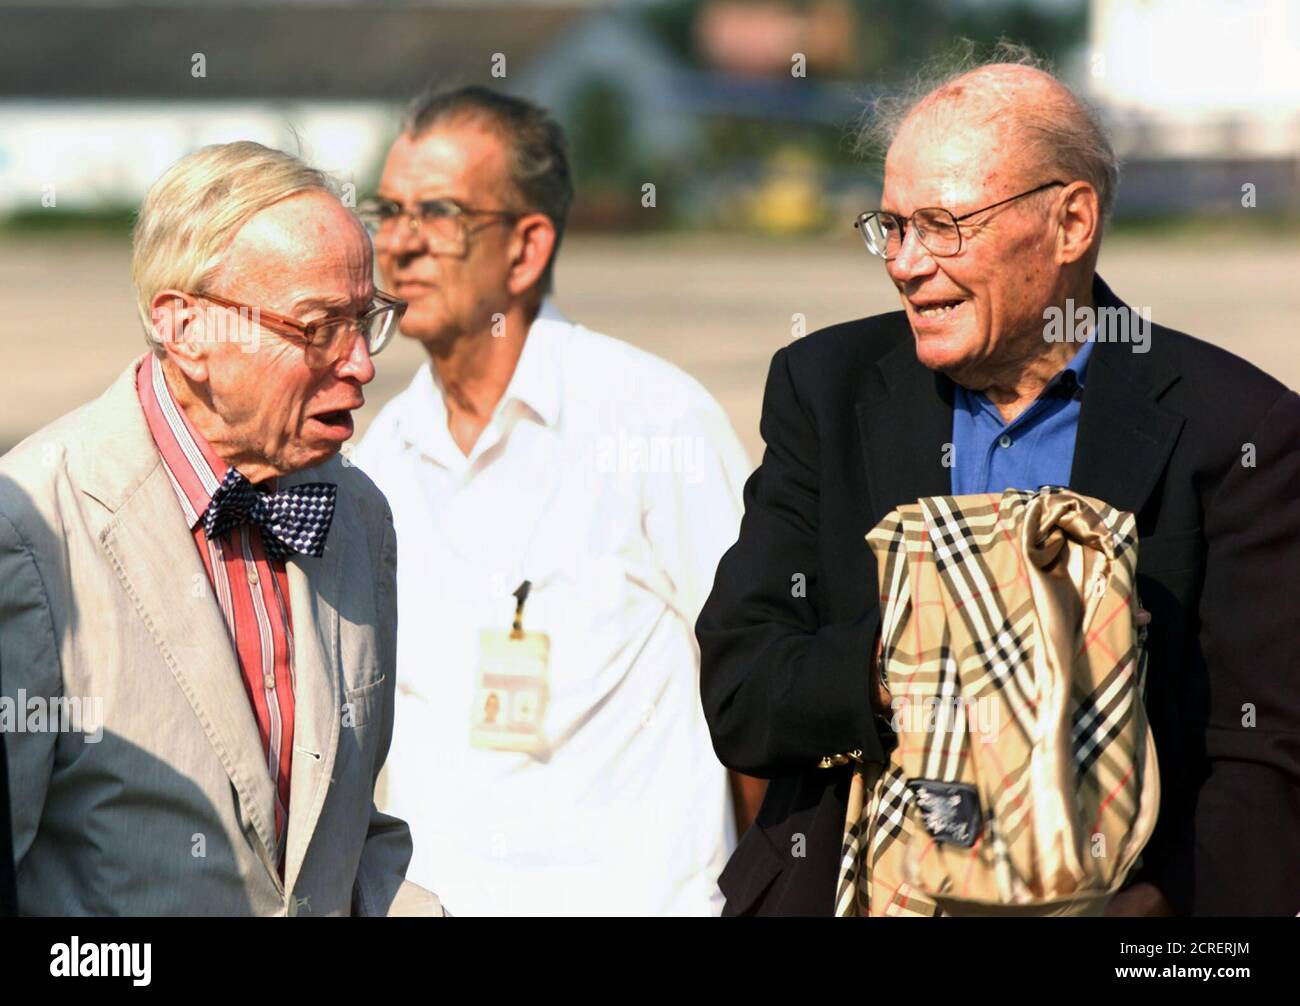 Former Secretary of Defense Robert McNamara (R) and special aide to the President Arthur Schlesinger arrive in Havana, October 10, 2002. McNamara and Schlesinger, who both worked during the John F. Kennedy administration, are part of a U.S. delegation participating in a gathering to talk about the 1962 Cuban missile crisis. REUTERS/Rafael Perez  RP Stock Photo